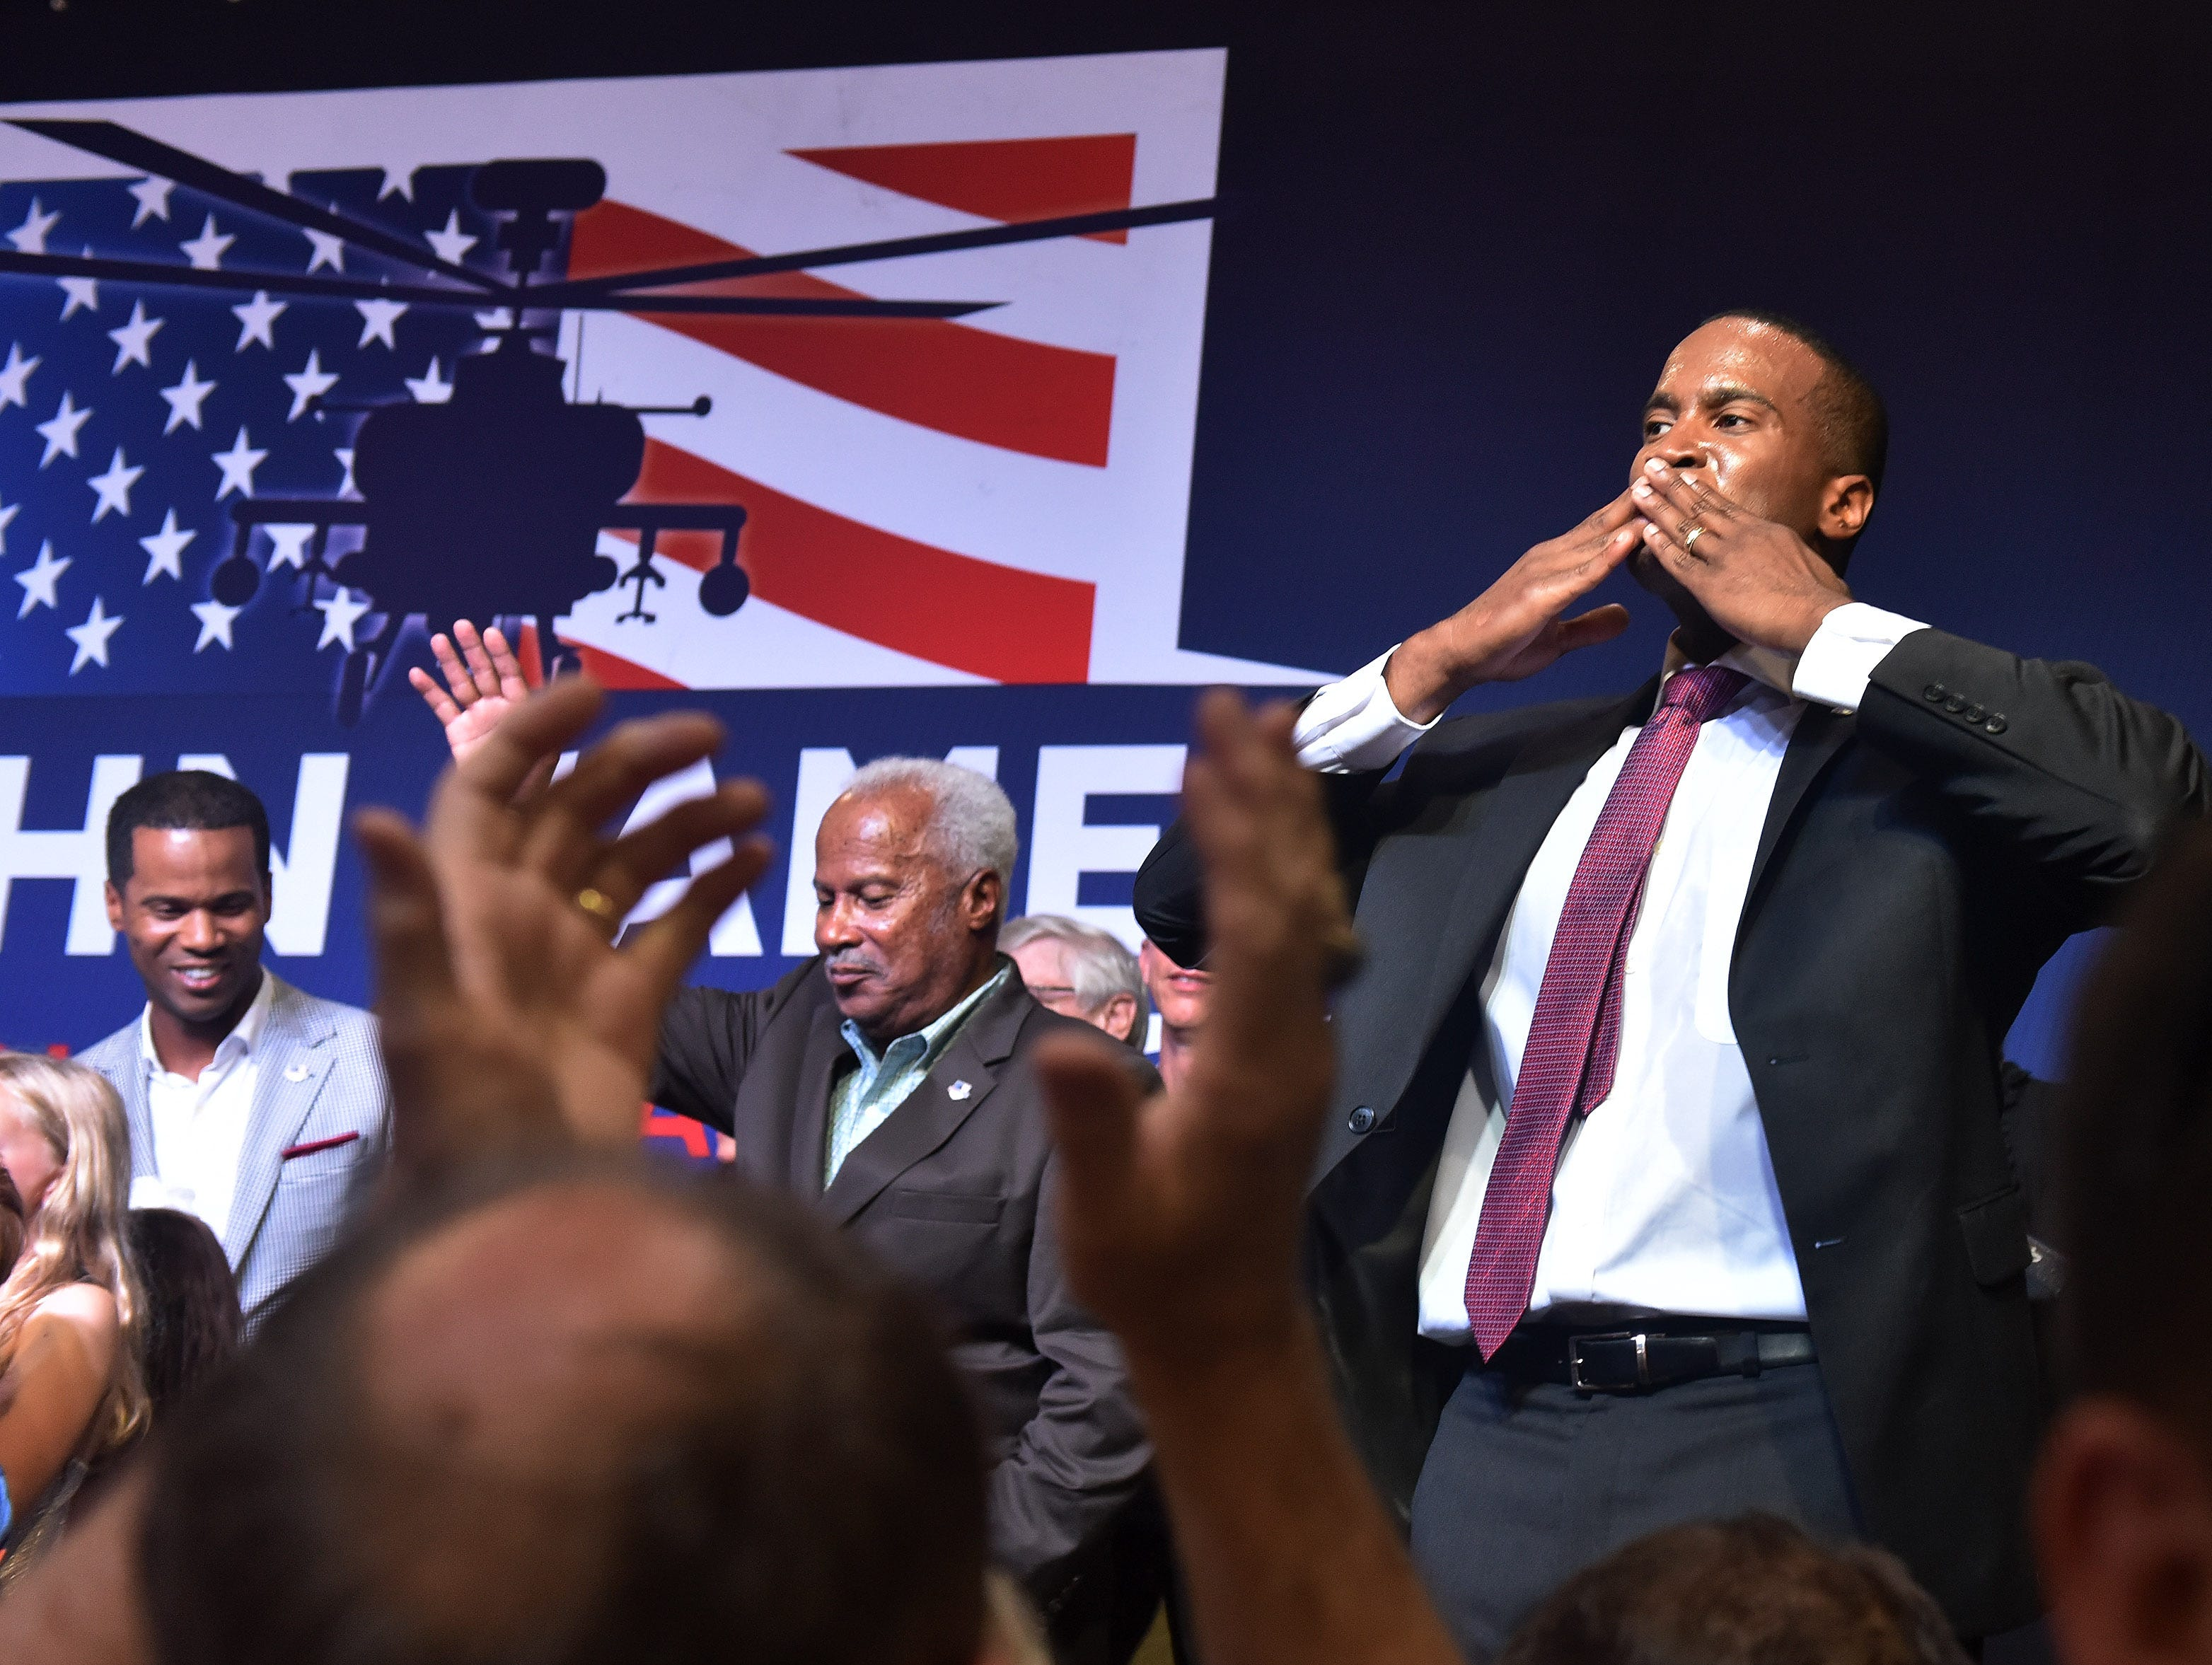 Republican Senate candidate John James blows a kiss to his supporters at his election night party at James Group International in Detroit on Aug. 7, 2018.